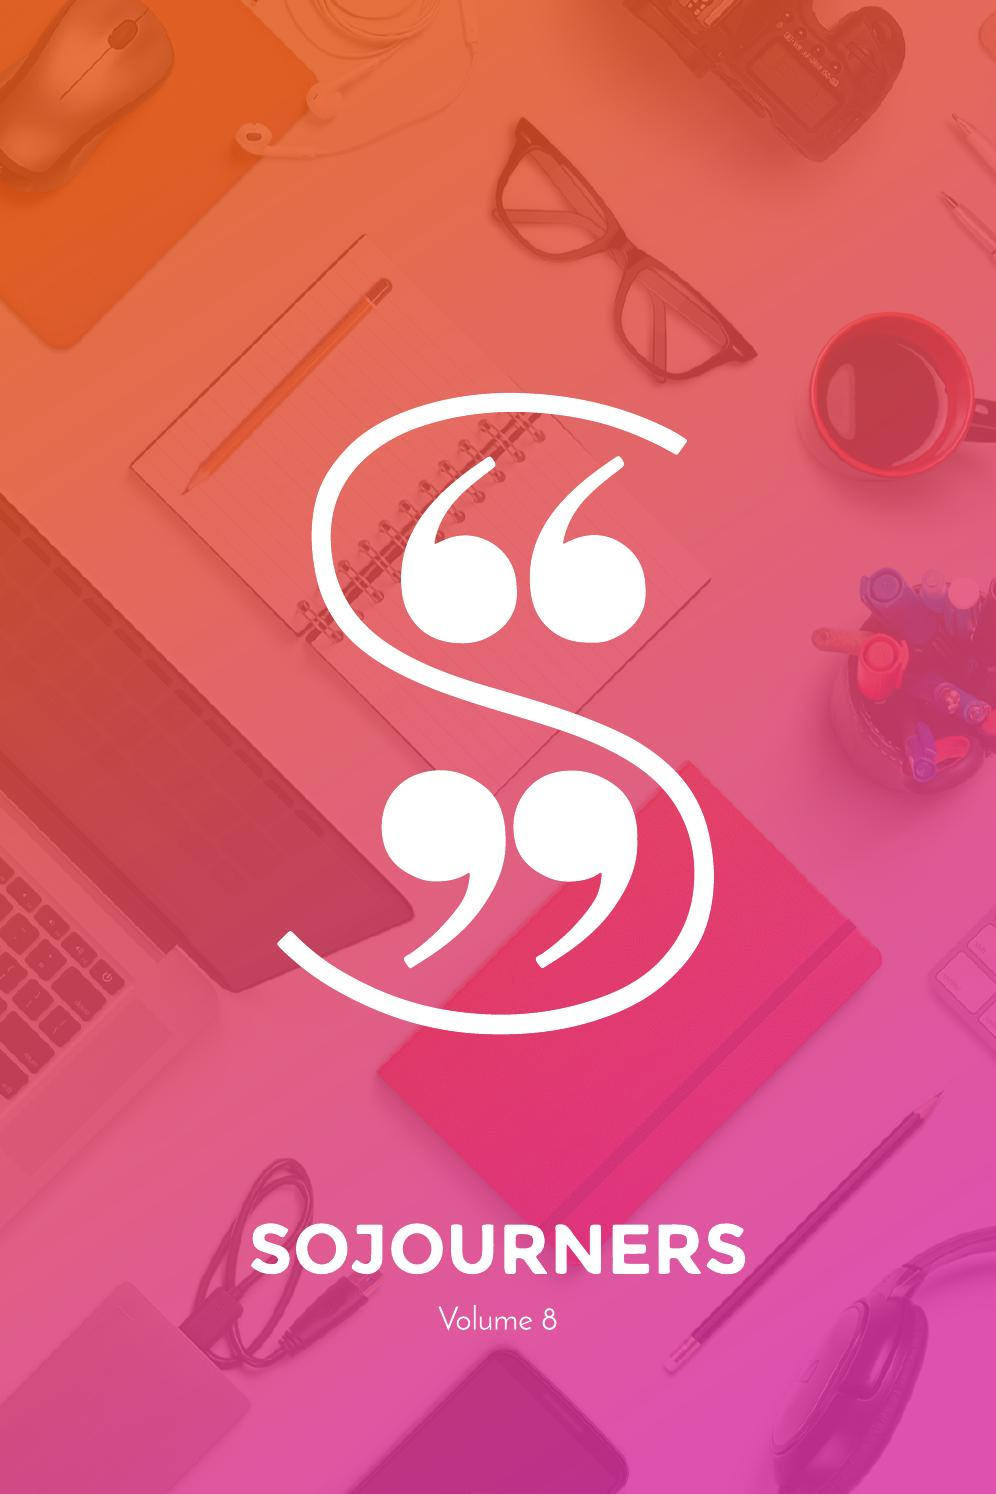 Sojourners Volume 8 (2016) by Sojourners Undergraduate Journal of ...